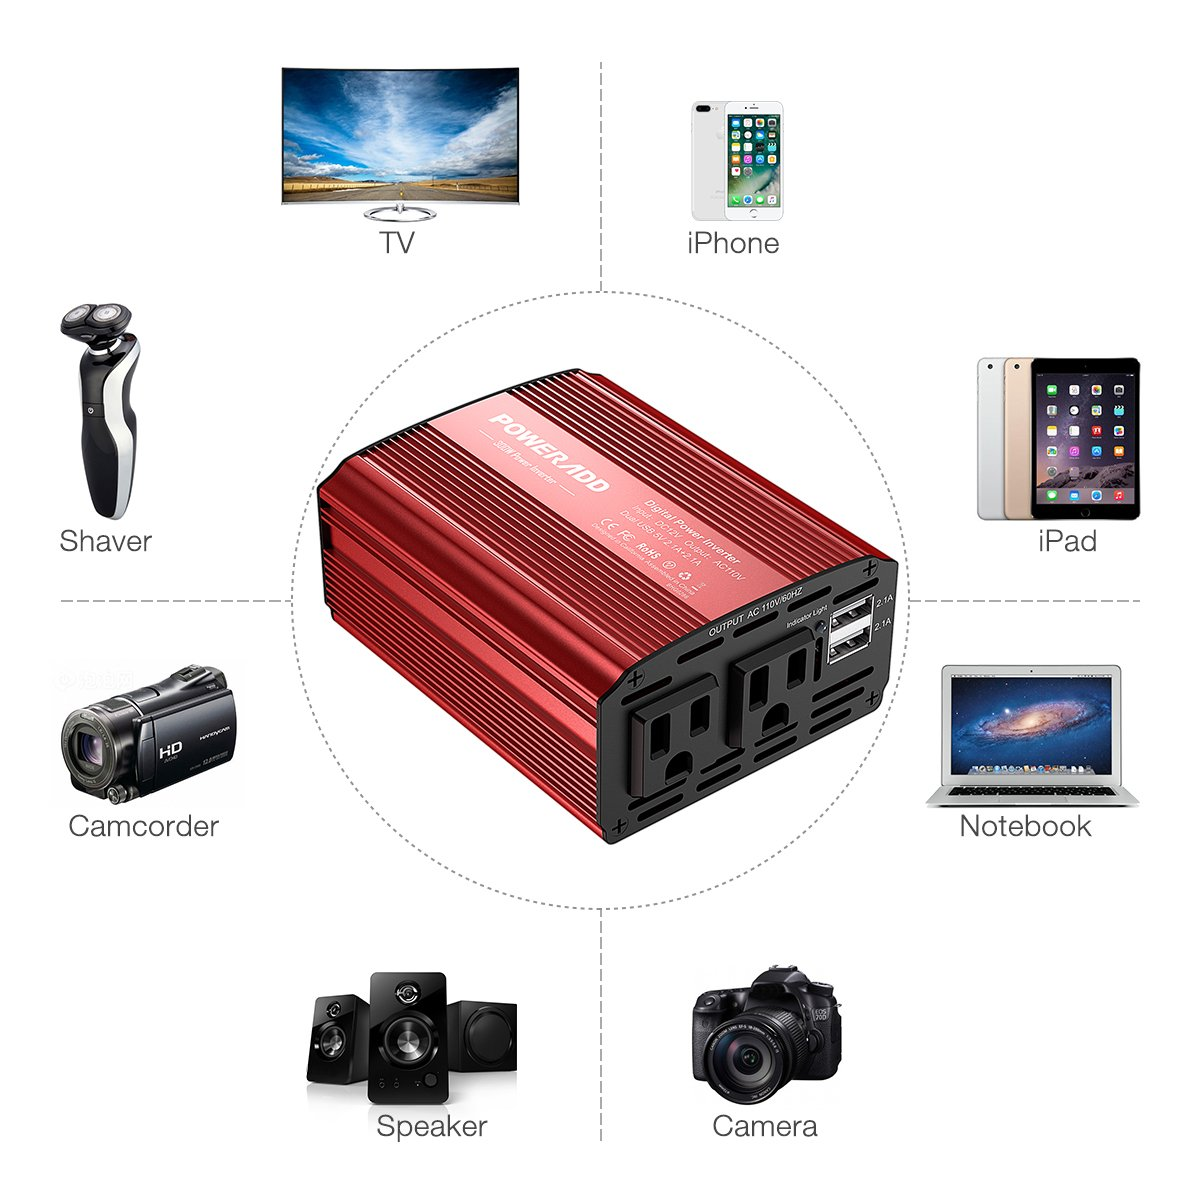 Poweradd 300W Car Power Inverter DC 12V to AC 110V Converter with Dual 3.1A Dual USB Ports for Smartphones, Tablet, Laptop, Breast pump, Nebulizer and More - Red